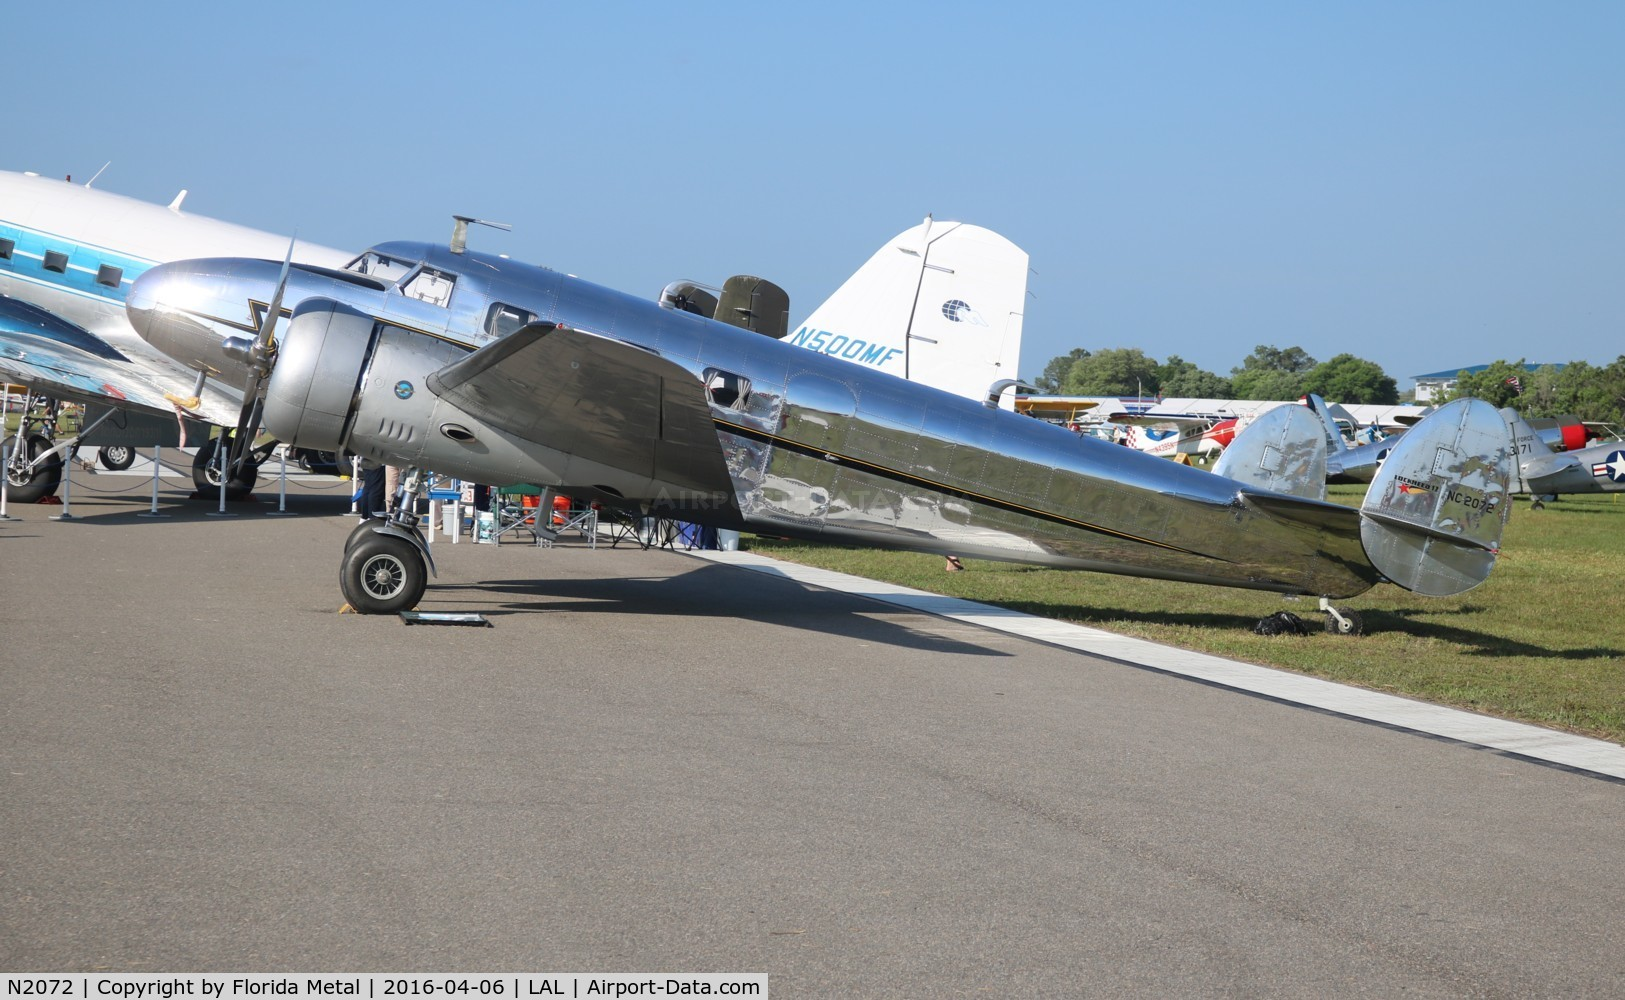 N2072, 1936 Lockheed 12A Electra Junior C/N 1208, Lockheed 12A